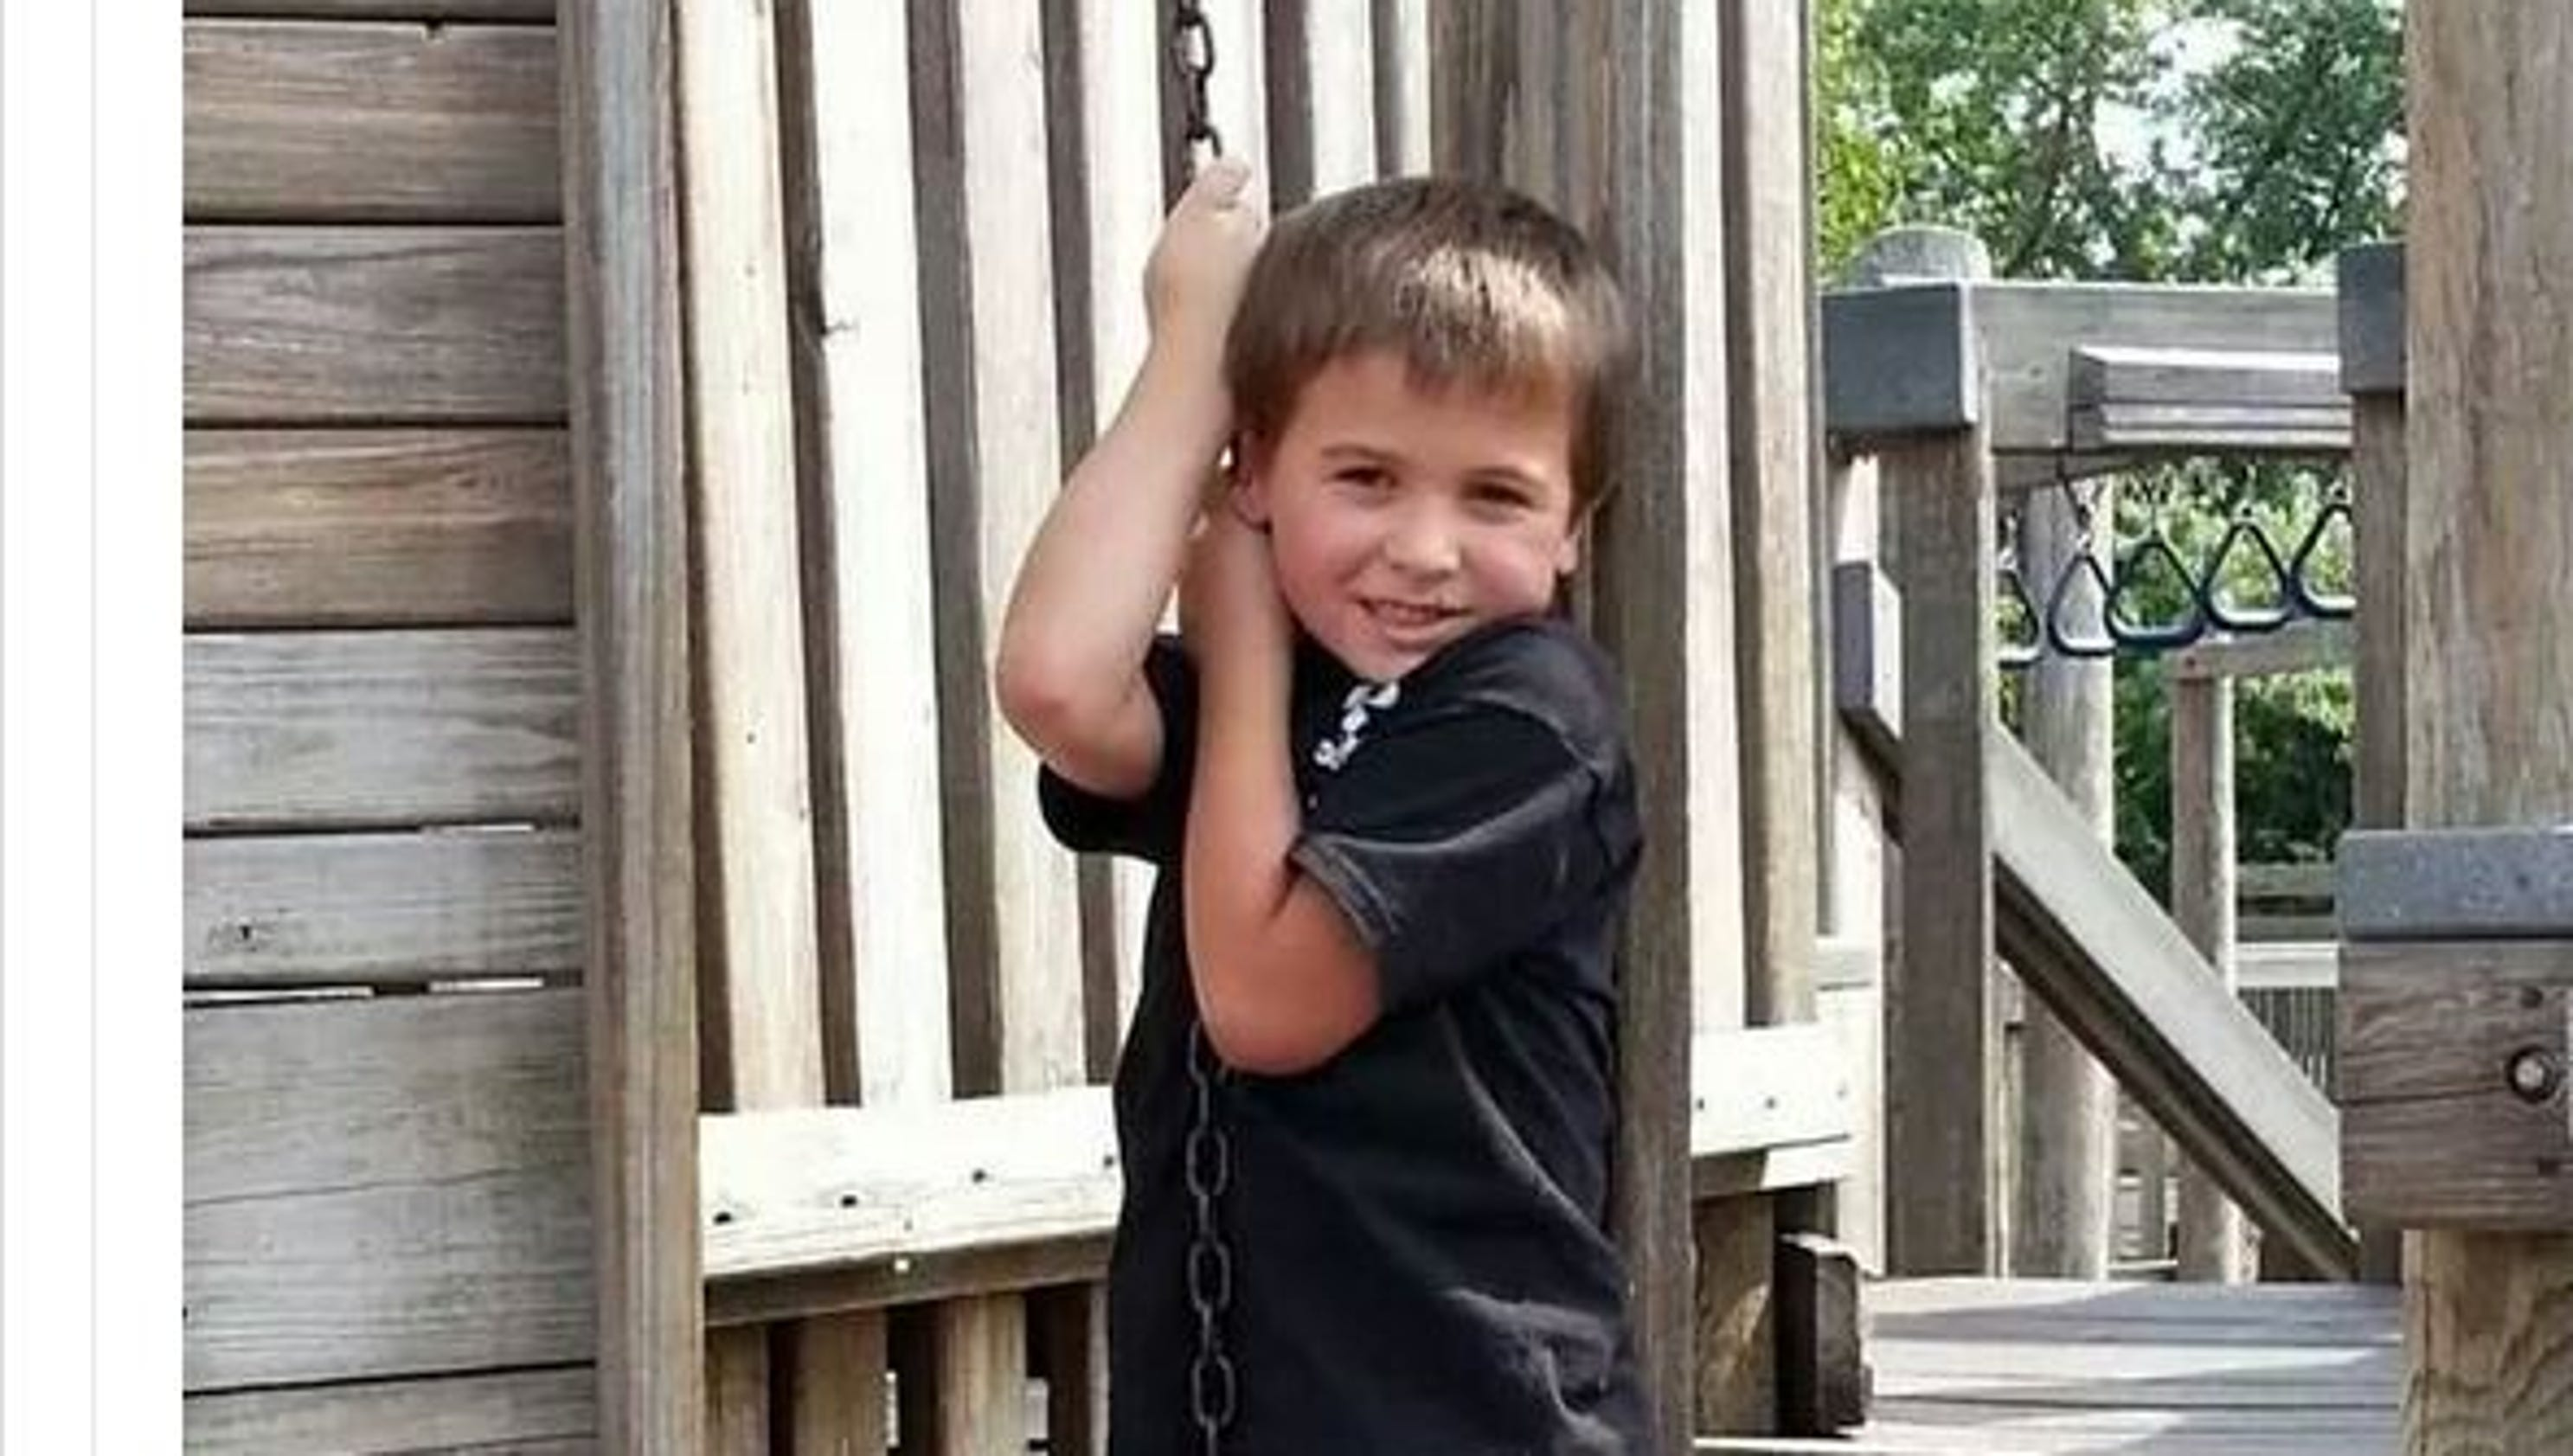 Dog That Attacked Dodge County Boy Euthanized